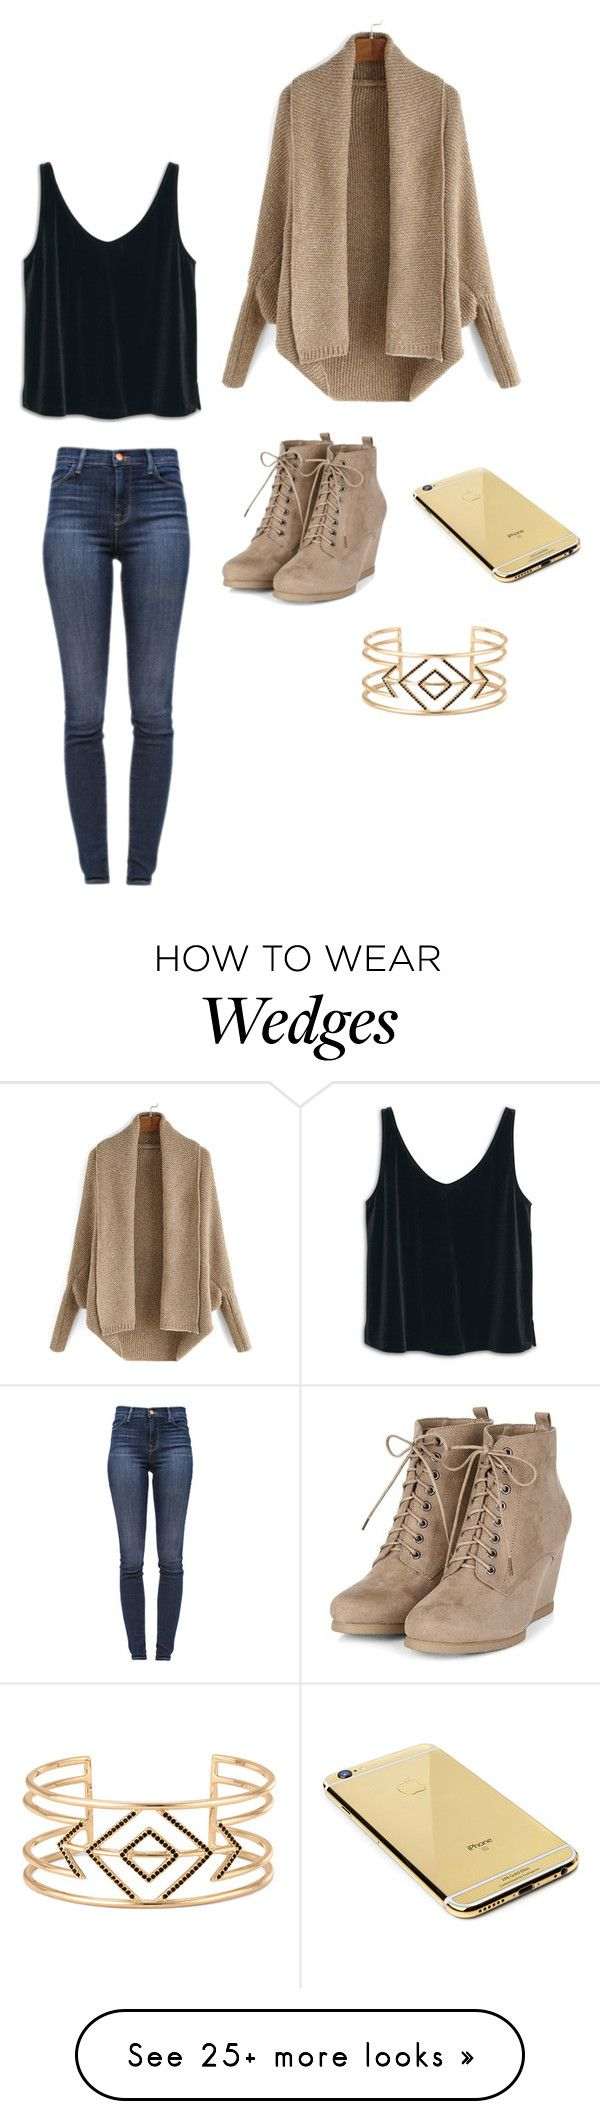 """Day"" by clairebear89 on Polyvore featuring MANGO, J Brand, Goldgenie and Stella & Dot"